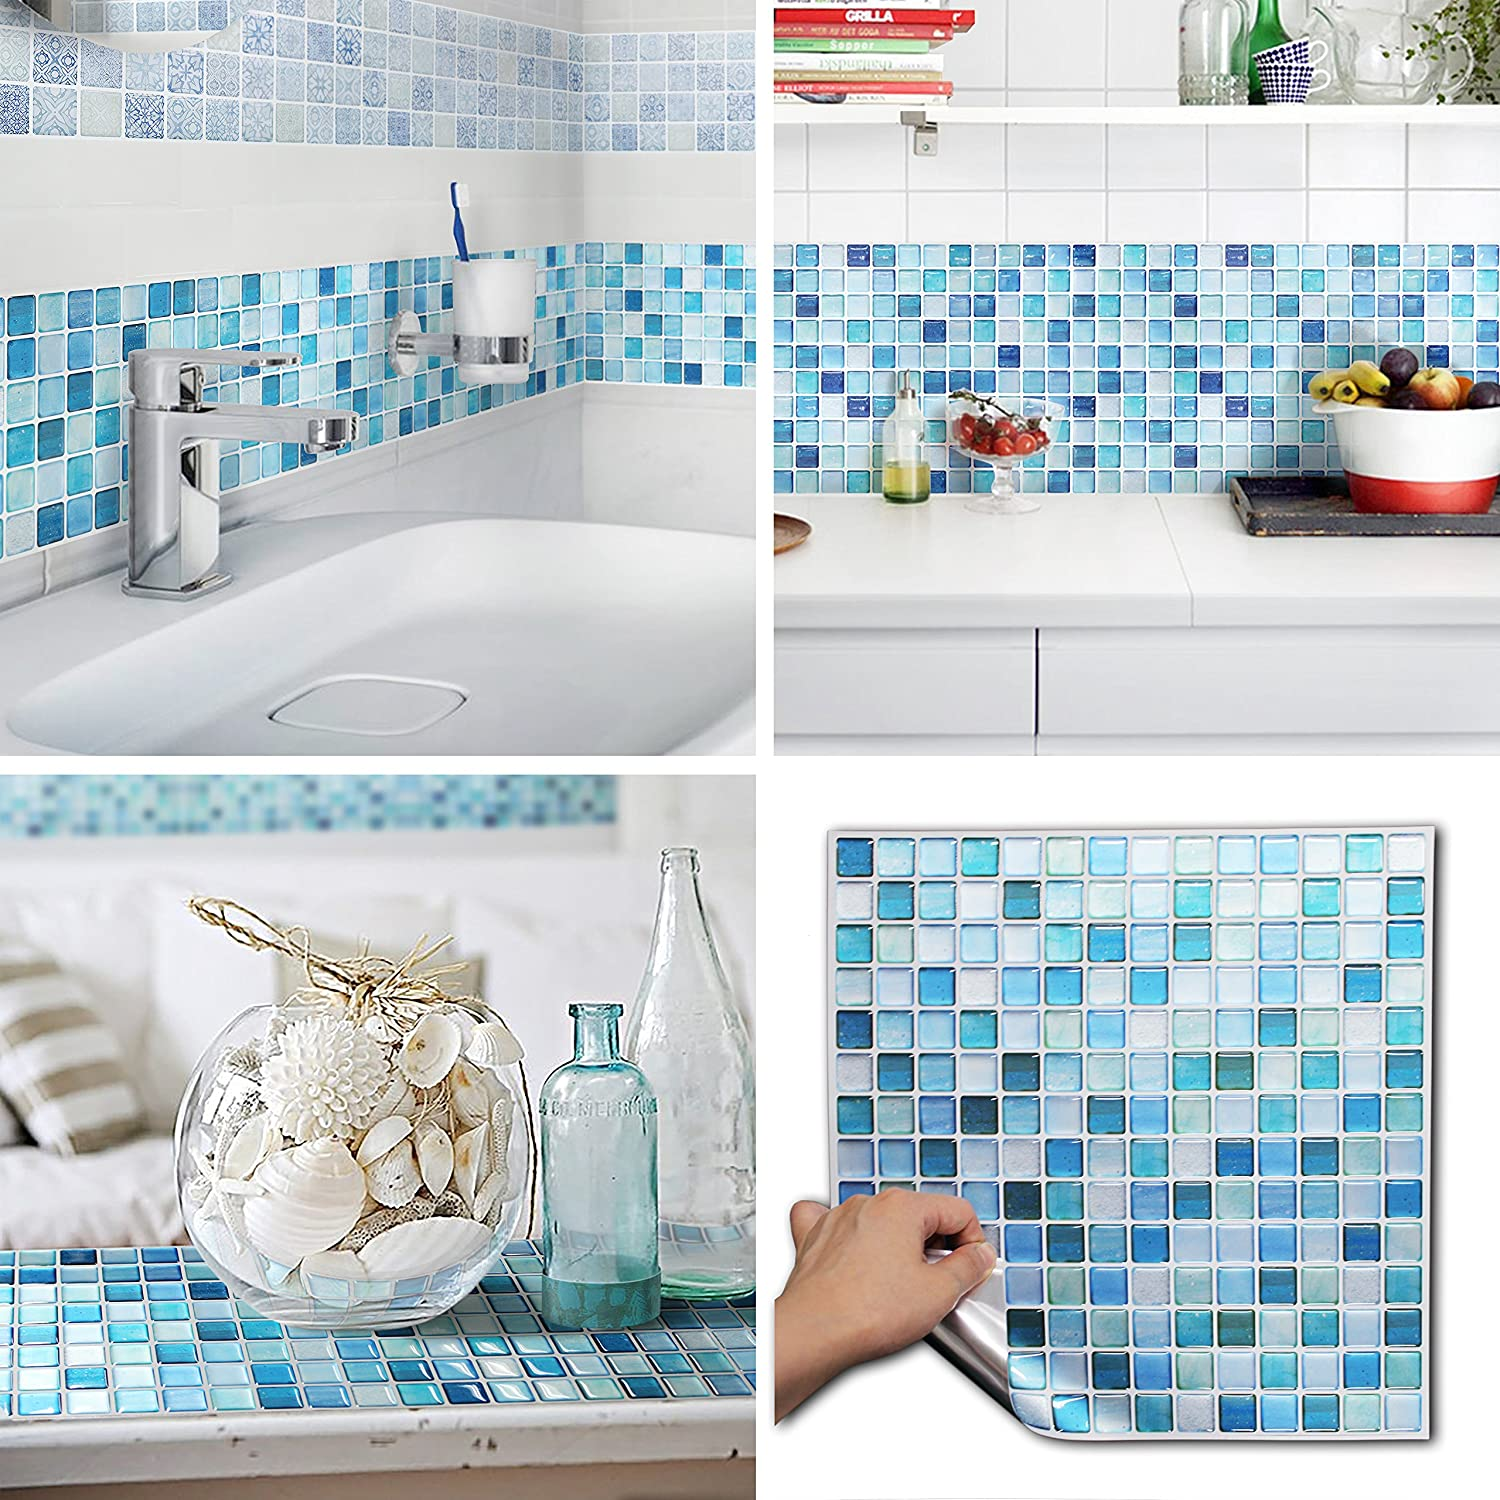 BEAUSTILE Decorative Tile Stickers Peel and Stick Backsplash Fire Retardant Tile Sheet (2pcs) (N.Blue) UNIDESIGN BST-12